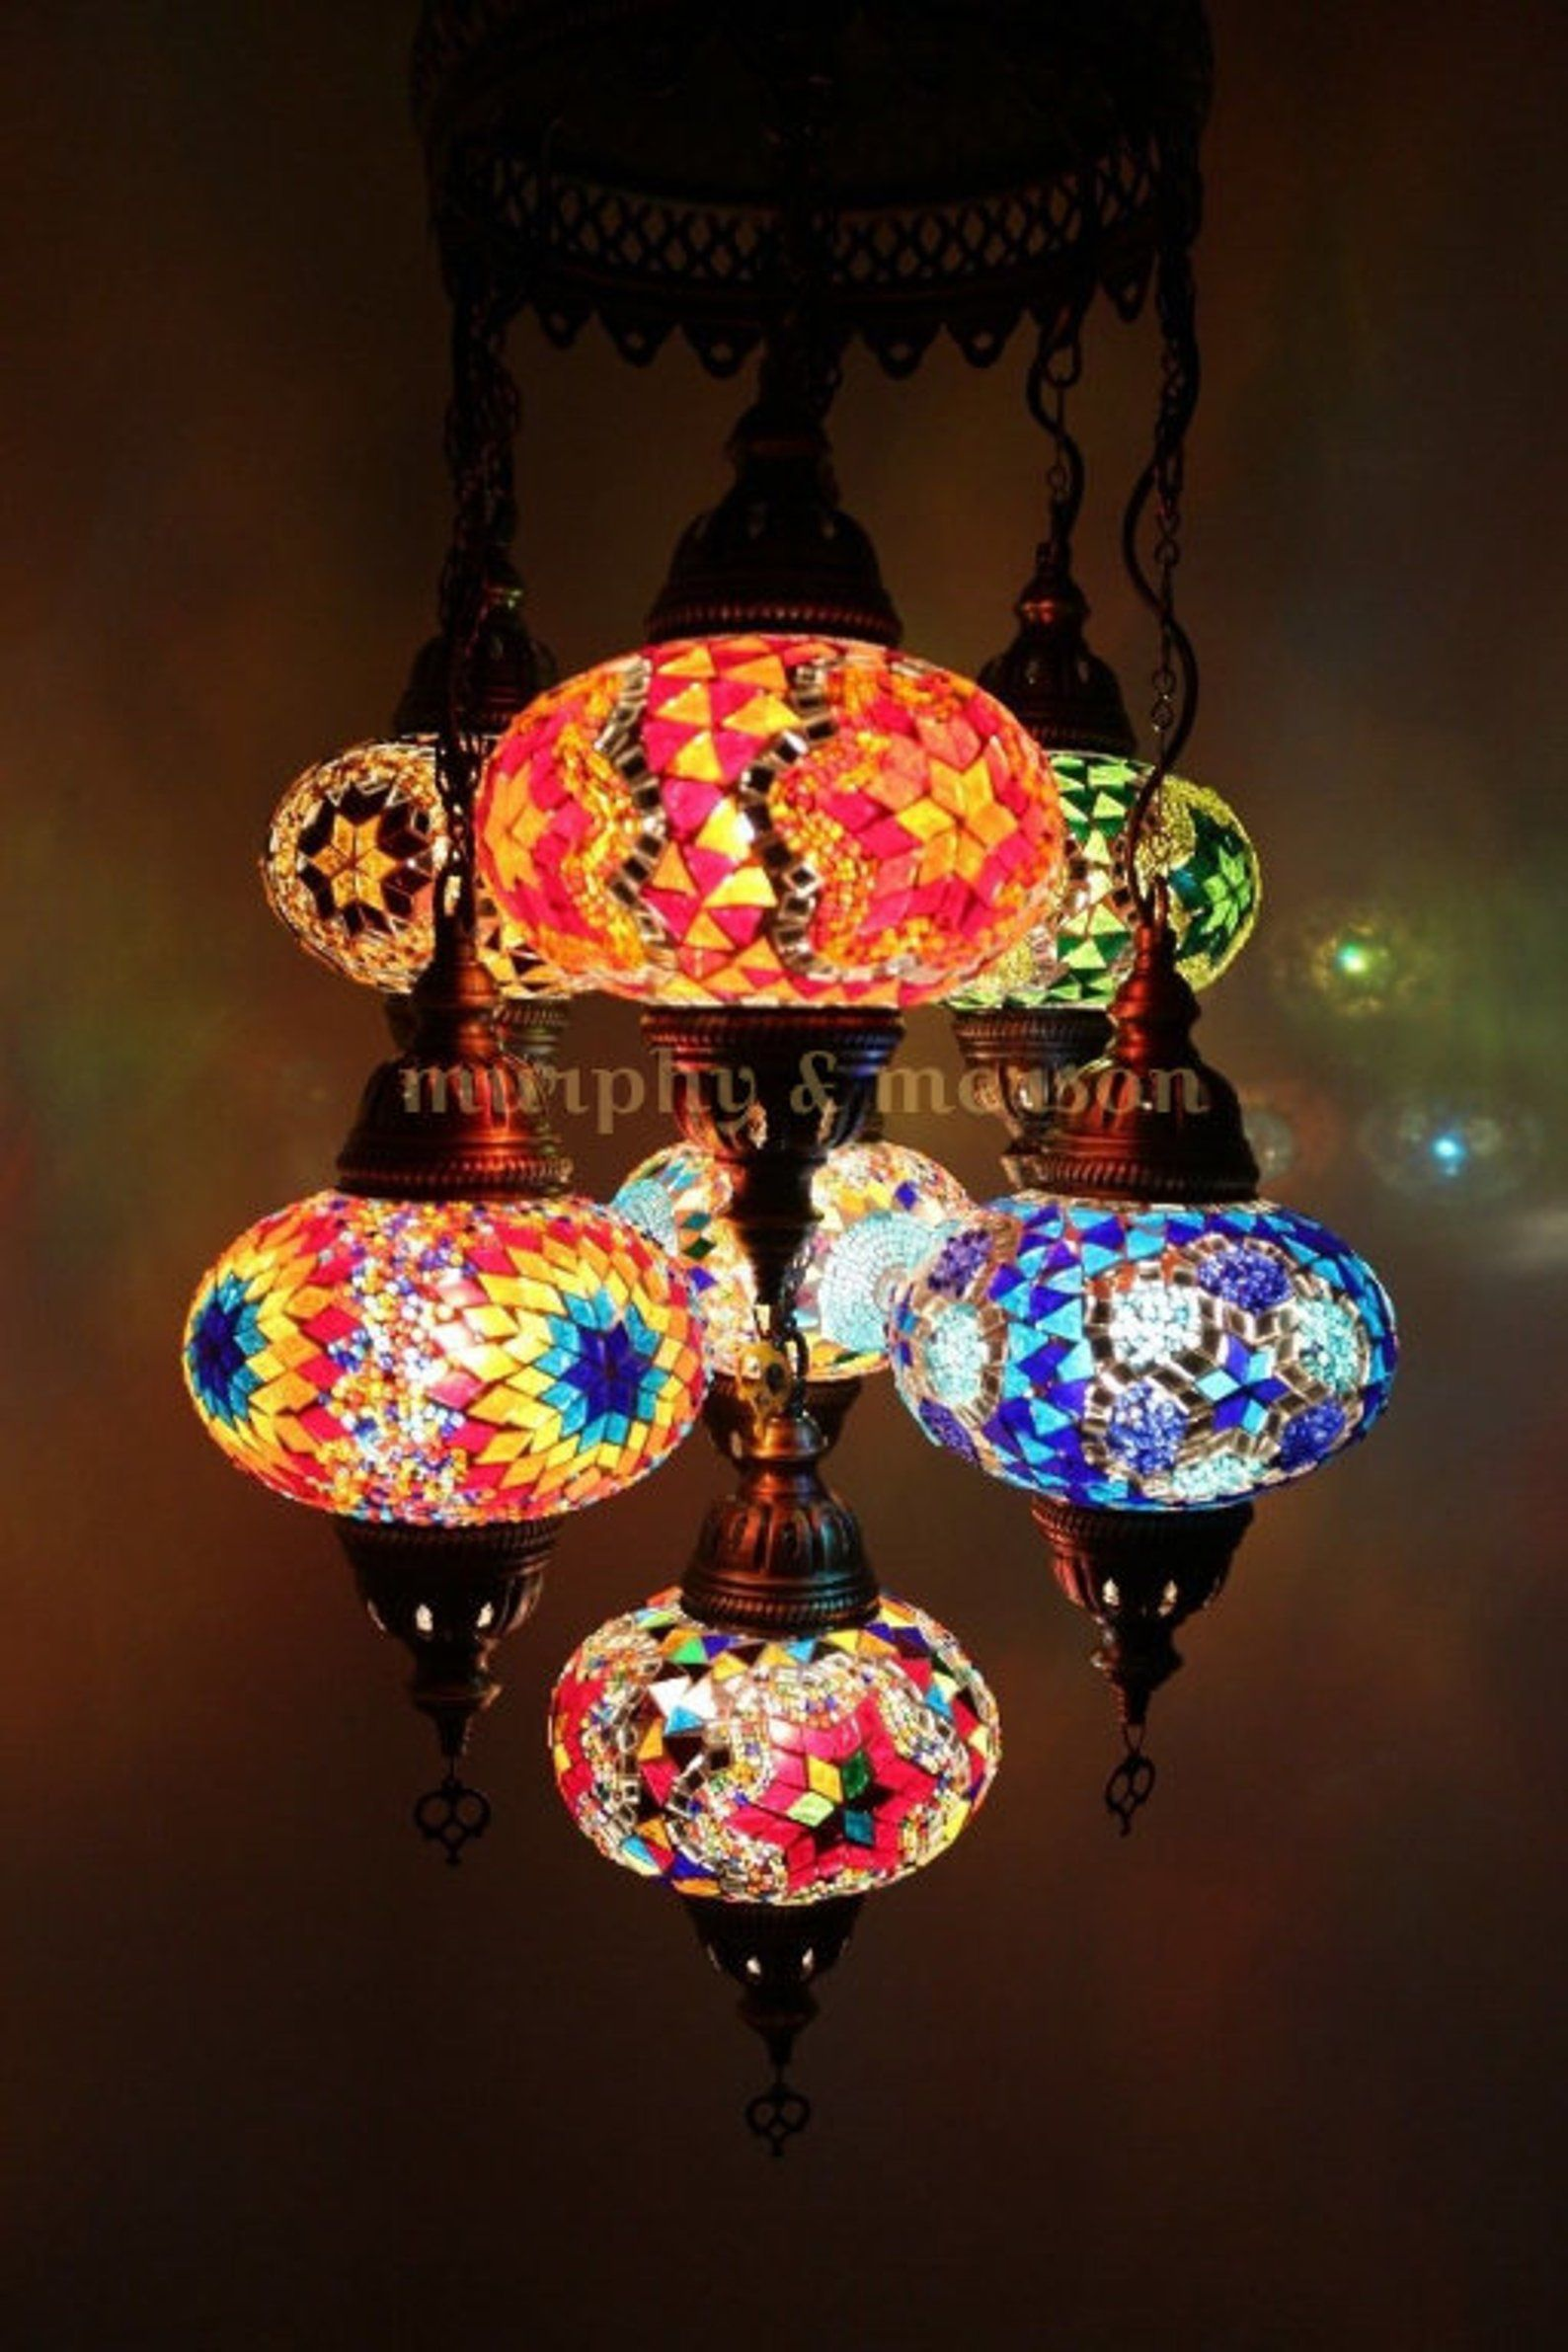 Turkish Mosaic Lamp 7 Globe Moroccan Style Chandeliers Hanging Light Night Traditional Antique Pendant Lampshade Free Expedited Shipping Turkish Mosaic Lamp Mosaic Lamp Lamp